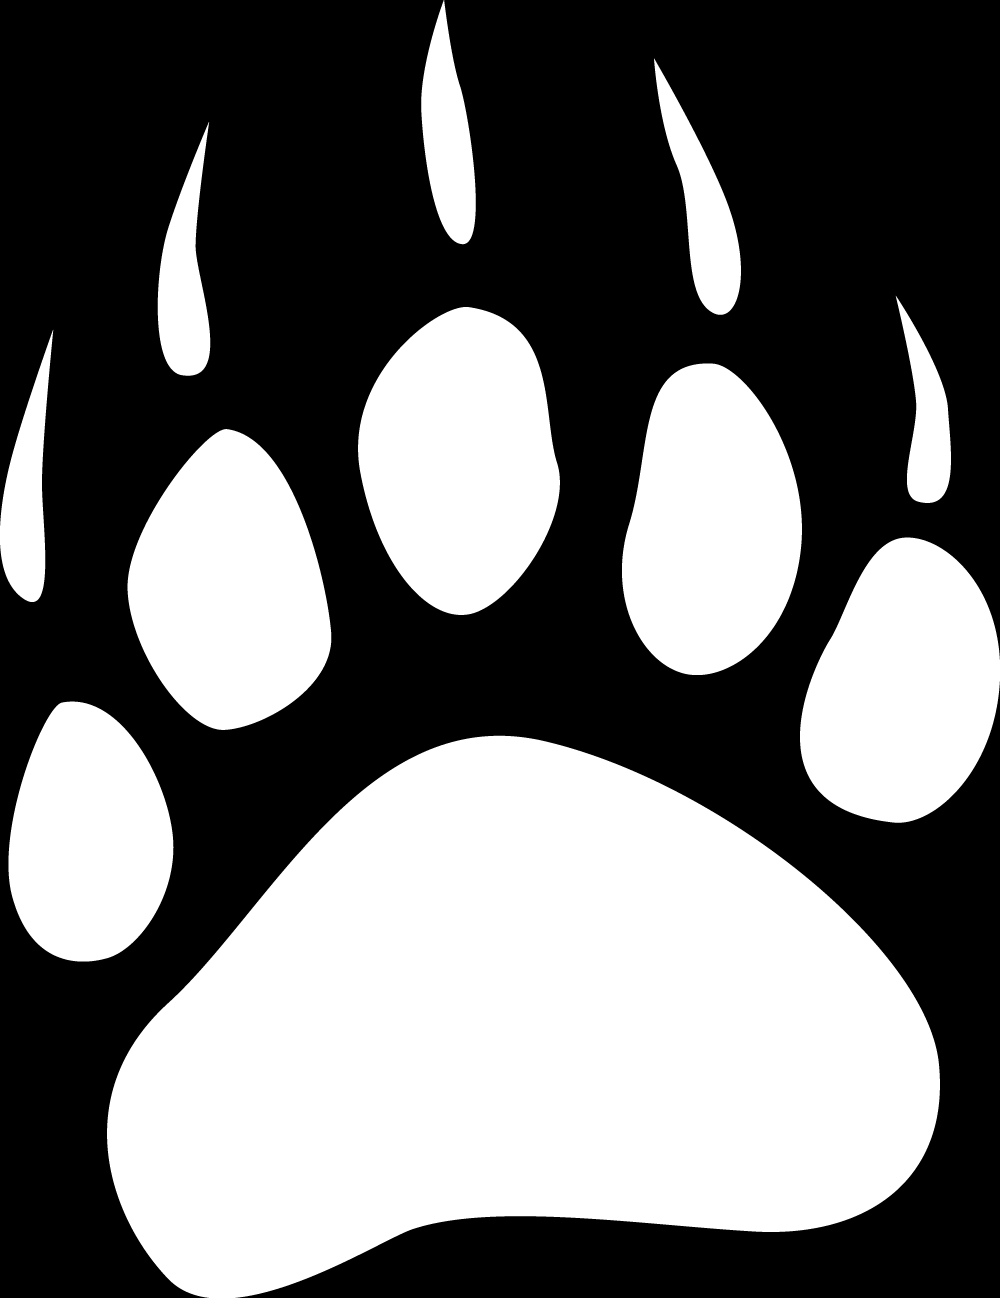 White Paw Print - Clipart library